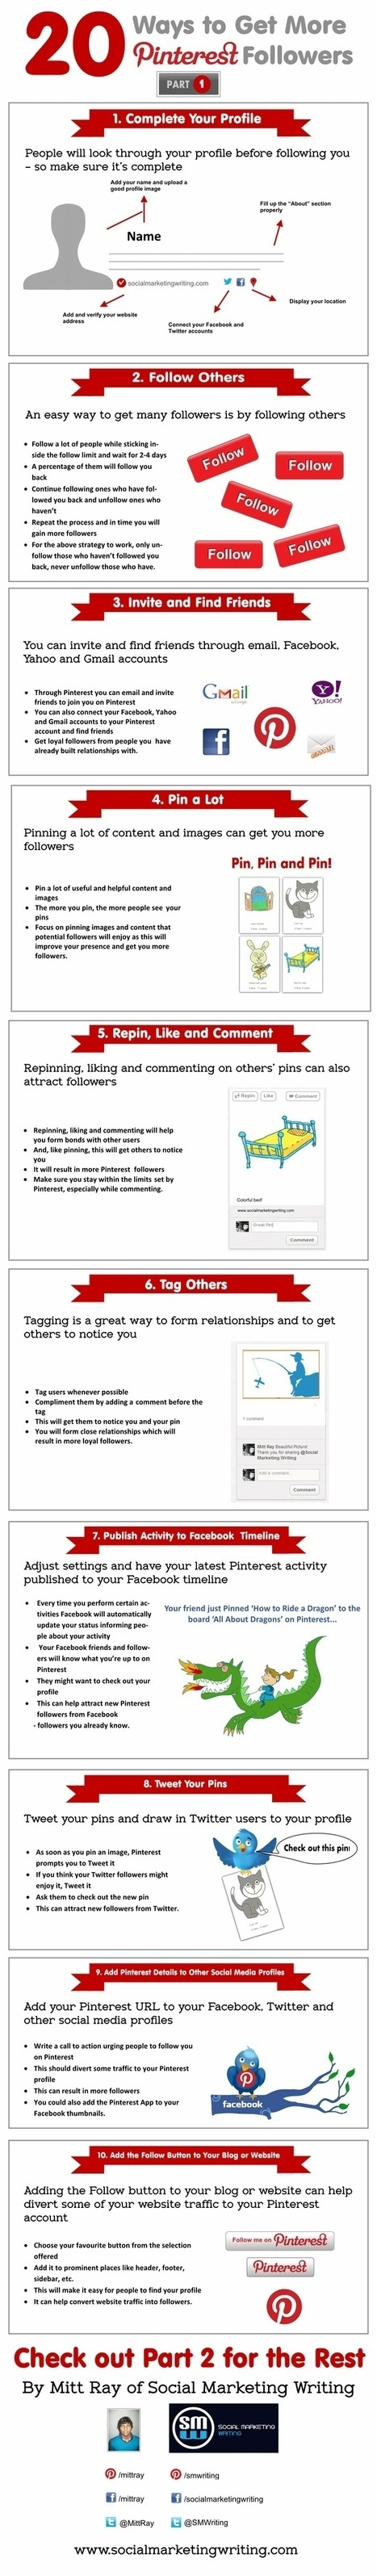 20 ways to get more #Pinterest followers | Pinterest for Business | Scoop.it